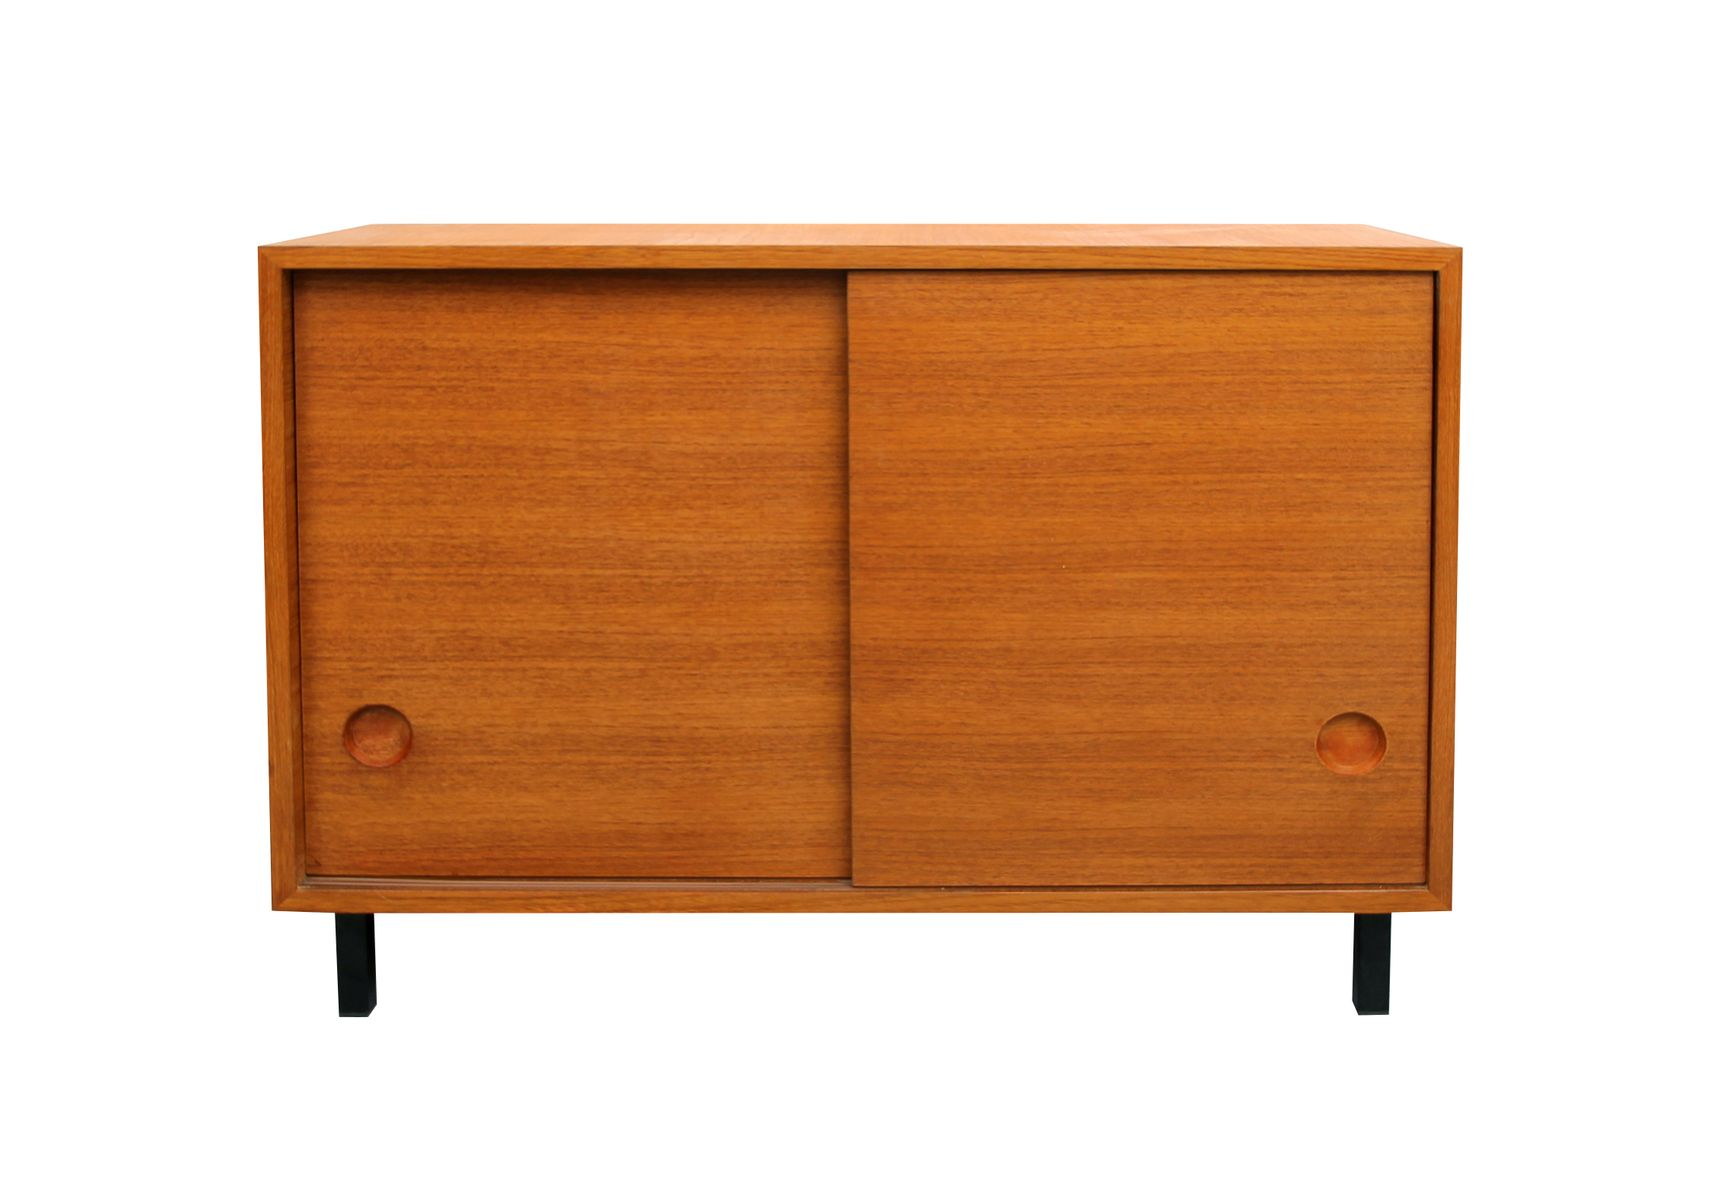 Images of Sideboard With Sliding Doors - Woonv.com - Handle idea